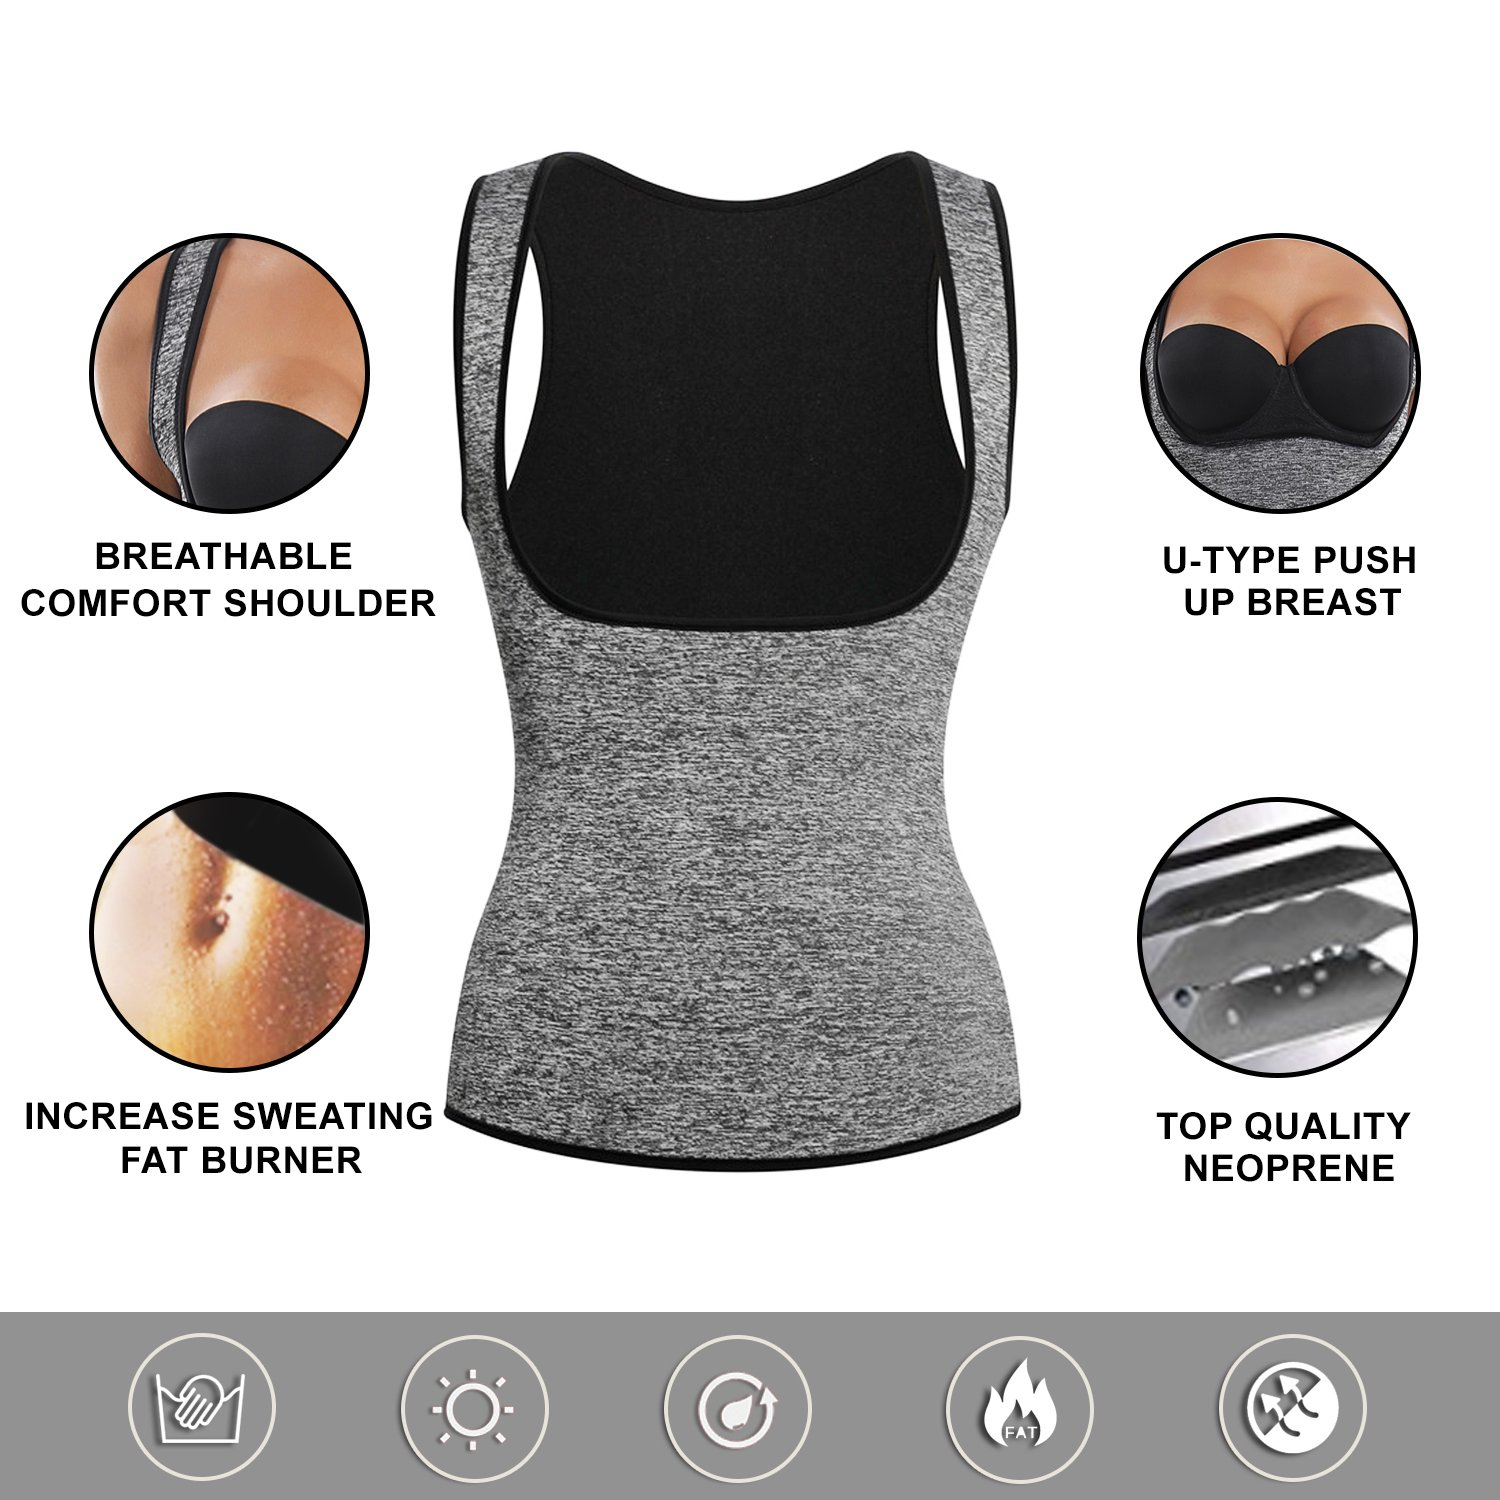 8f40c0c2197 Joyshaper Sweat Vest for Weight Loss Women Slimming Sauna Suit Waist  Trainer Trimmer Tummy Tank Top ...